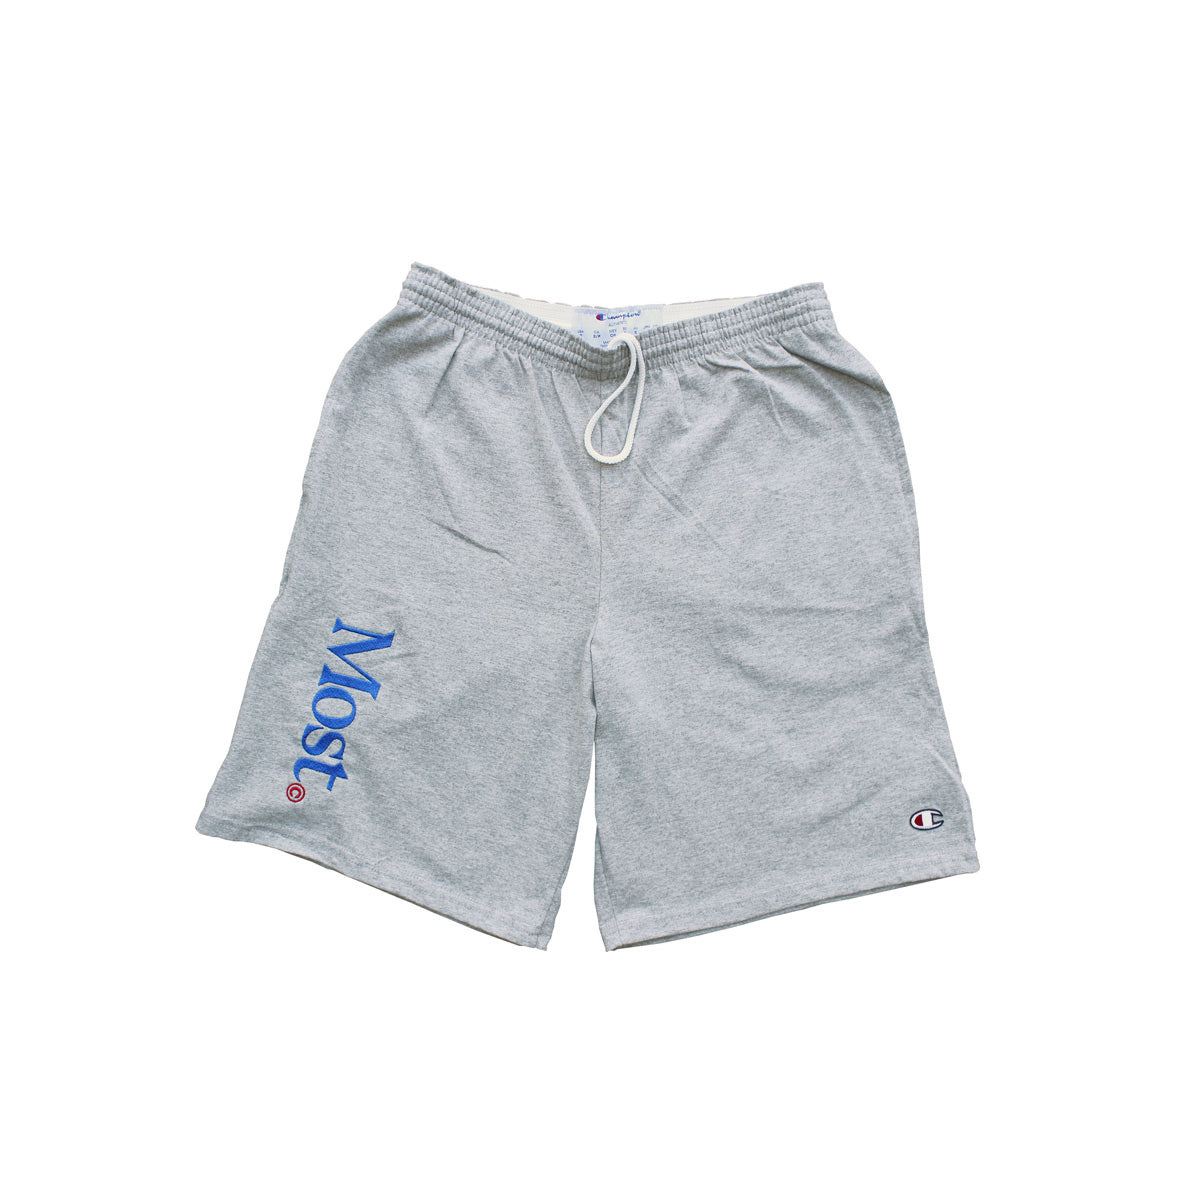 Serif Champion® Sweatshort - Grey